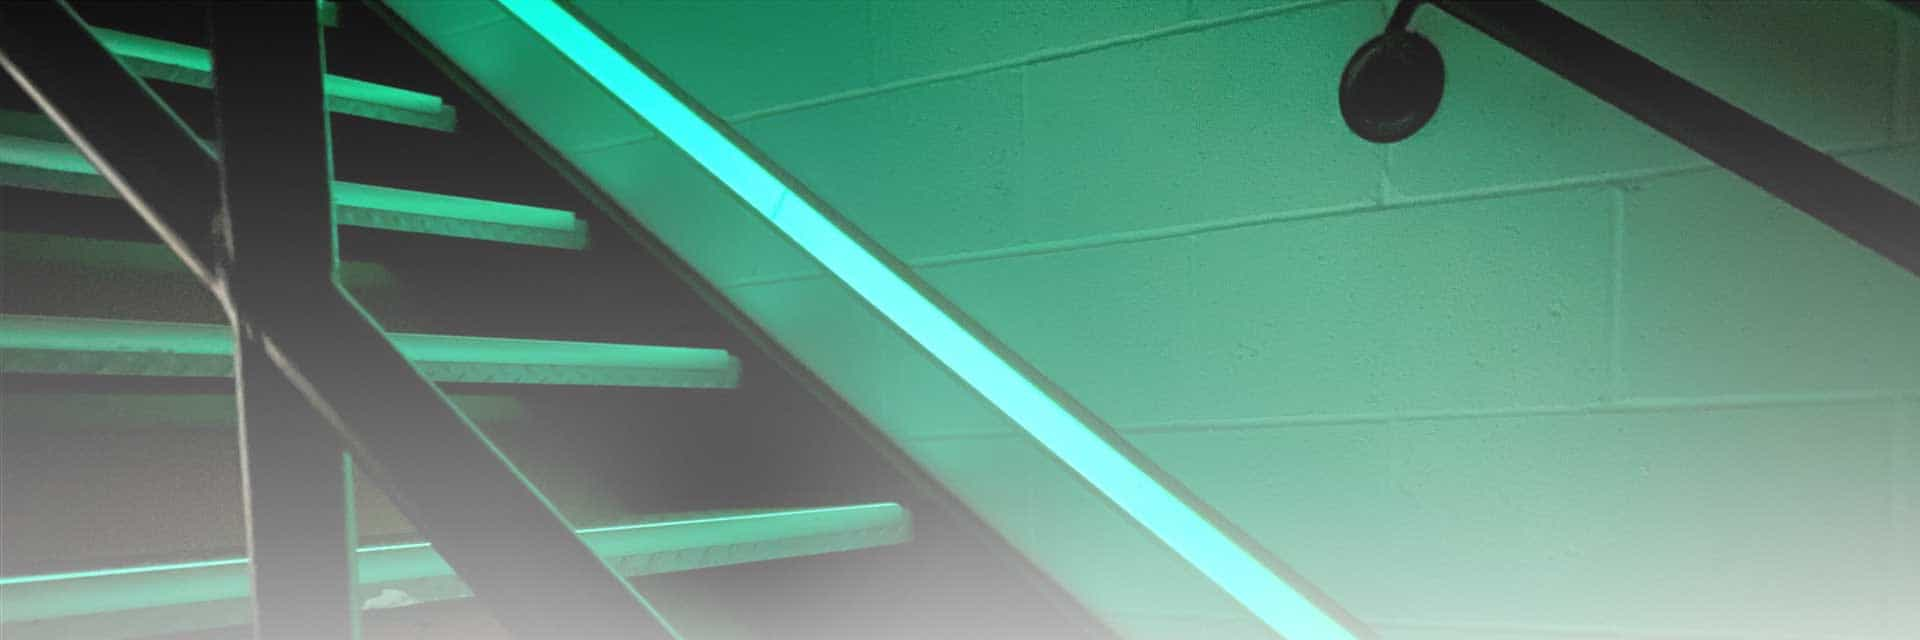 ecoglo banner image: stairwell with photoluminescent pathmarking tape